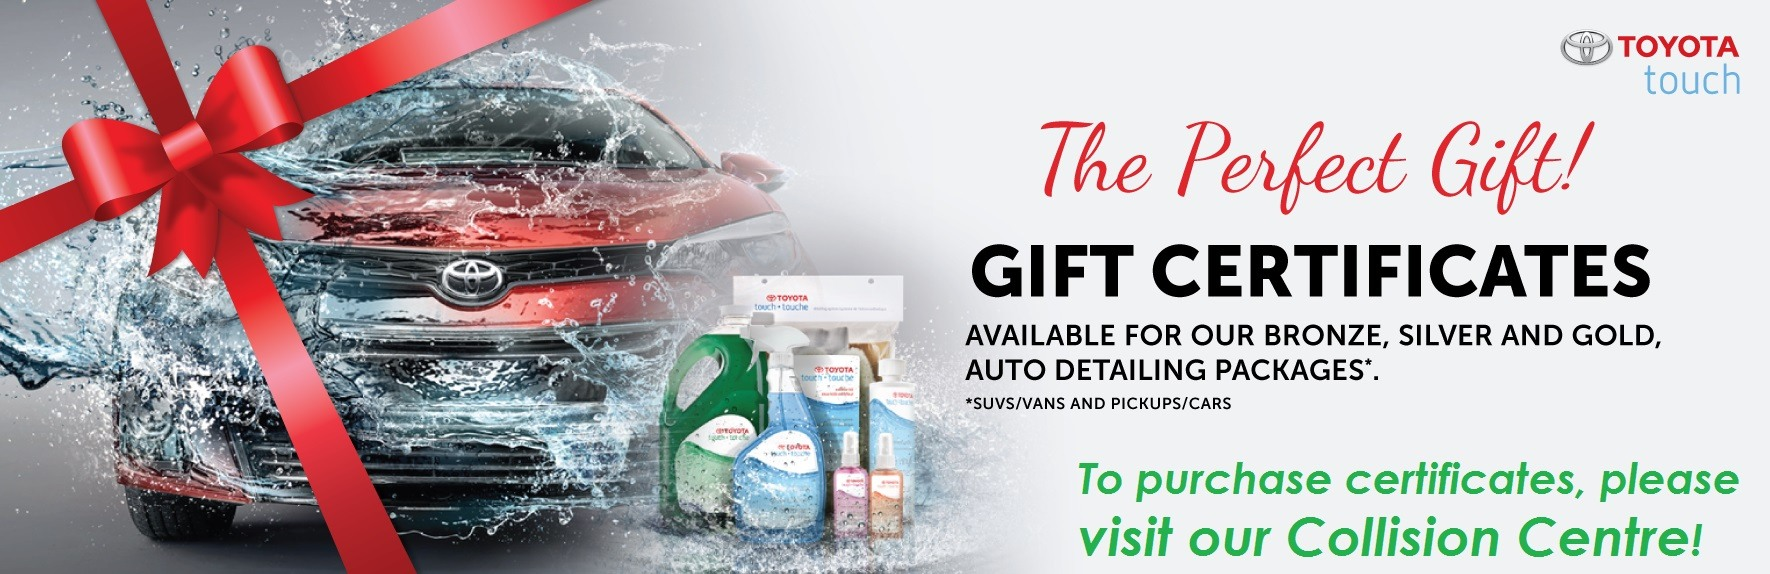 Toyota Touch Detailing Gift Certificates at Ken Shaw Toyota in Toronto, Ontario